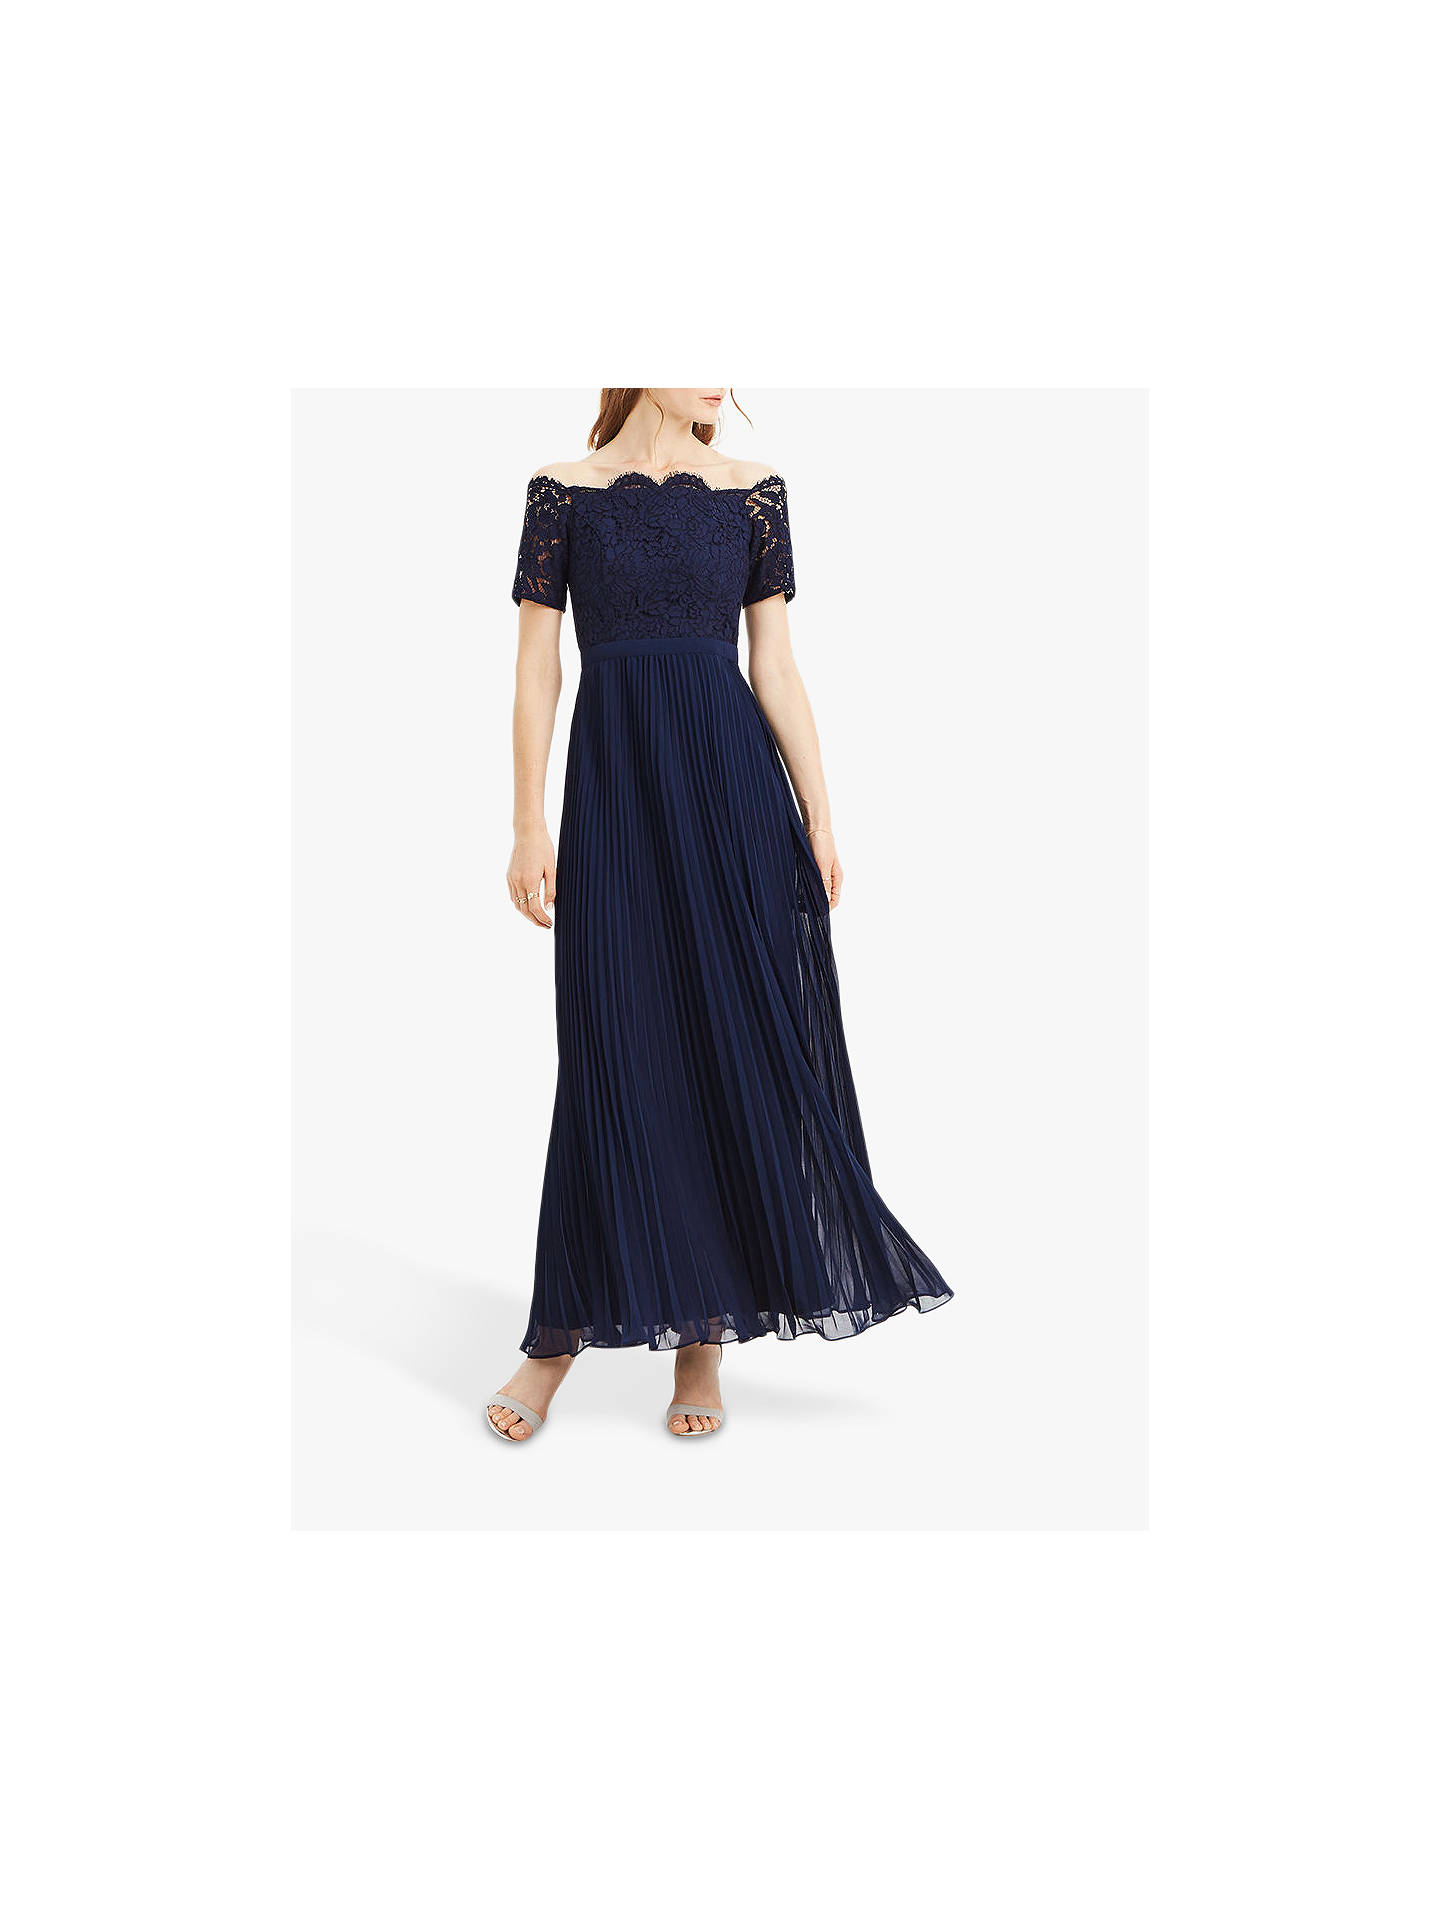 8f5689306413 Buy Oasis Lace Bardot Dress, Navy, 8 Online at johnlewis.com ...